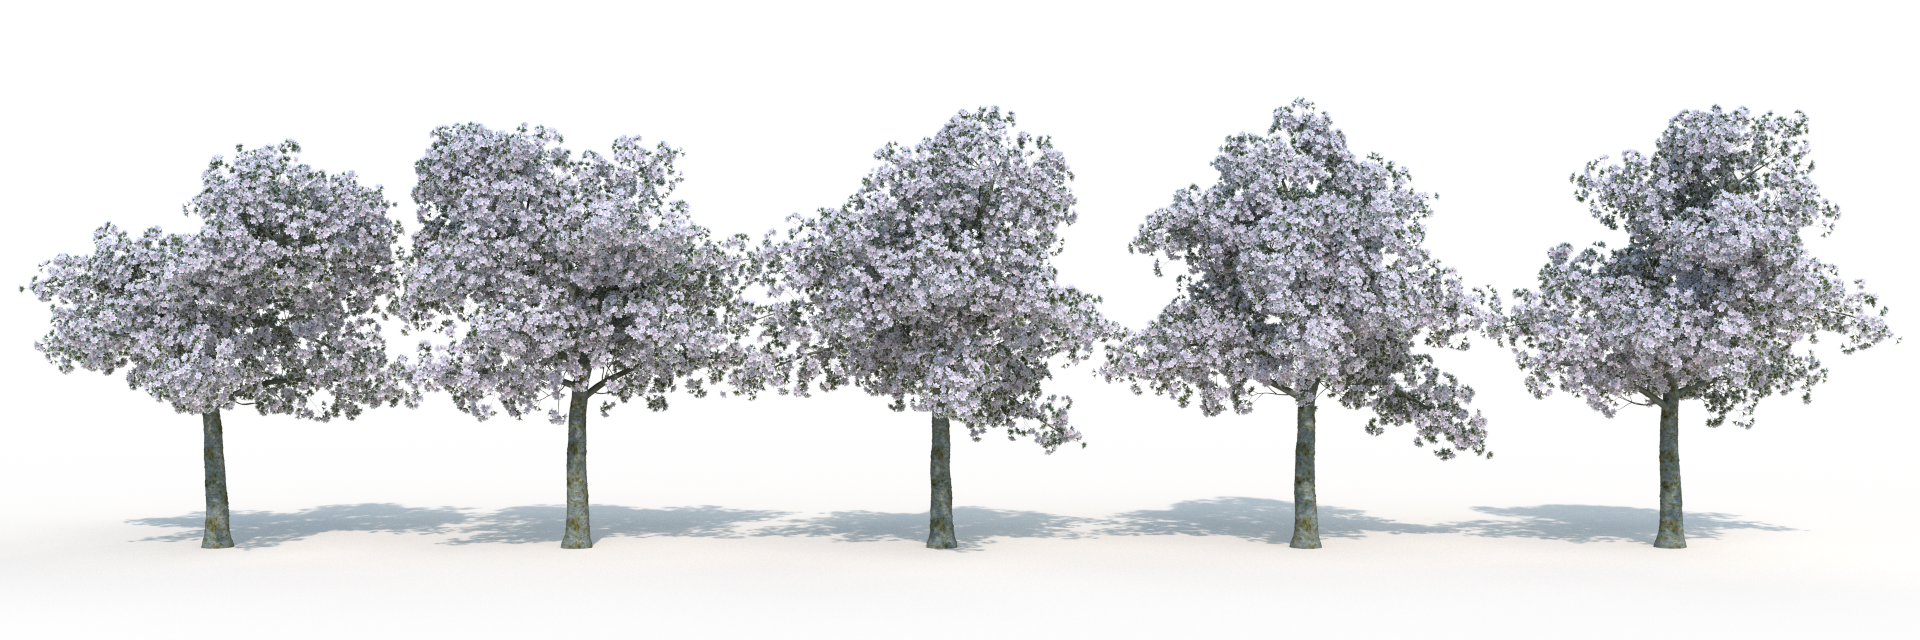 Here's a front view of all five trees, rendered with the included textures.